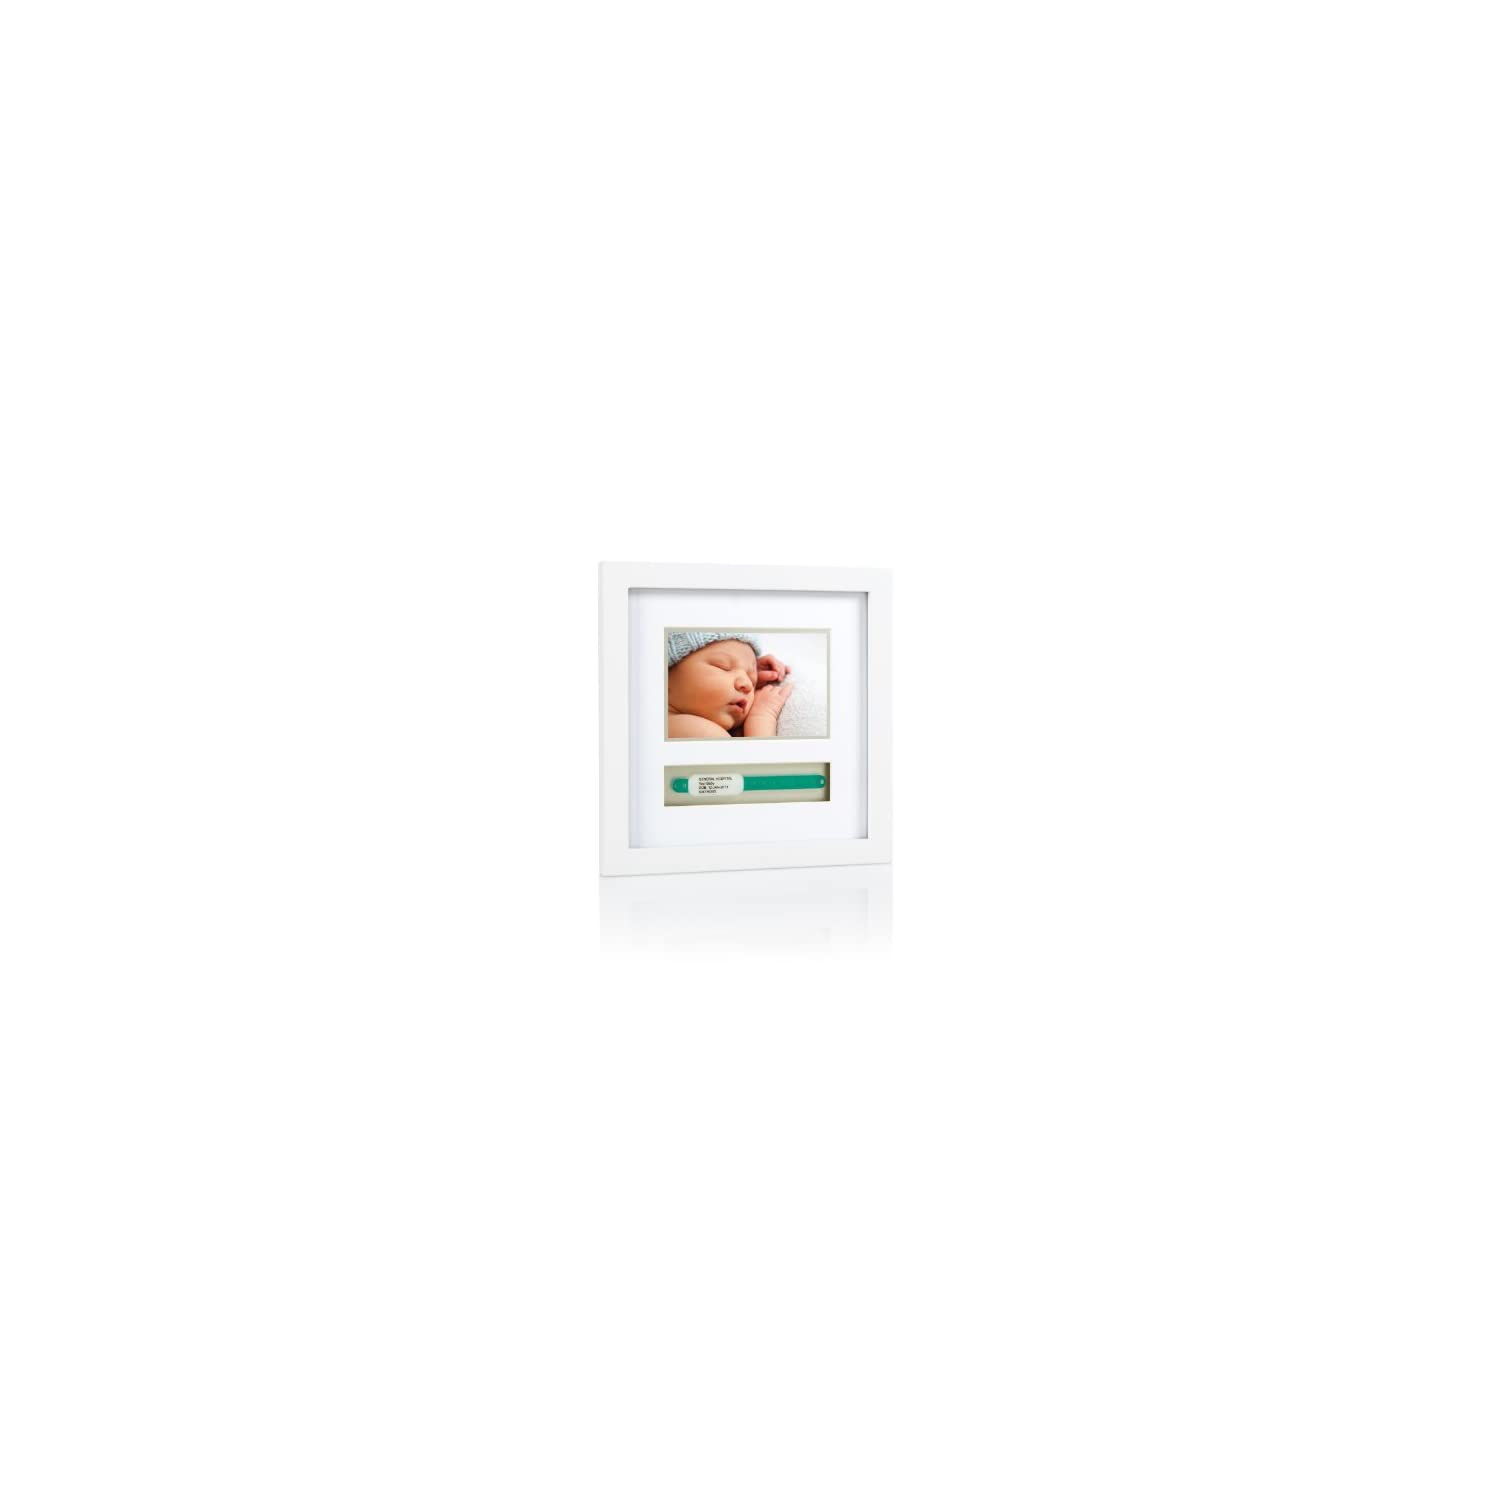 Pearhead Baby Hospital ID Bracelet and Photo Keepsake Frame, Baby Shower Gifts, Expecting Parents Gift, White